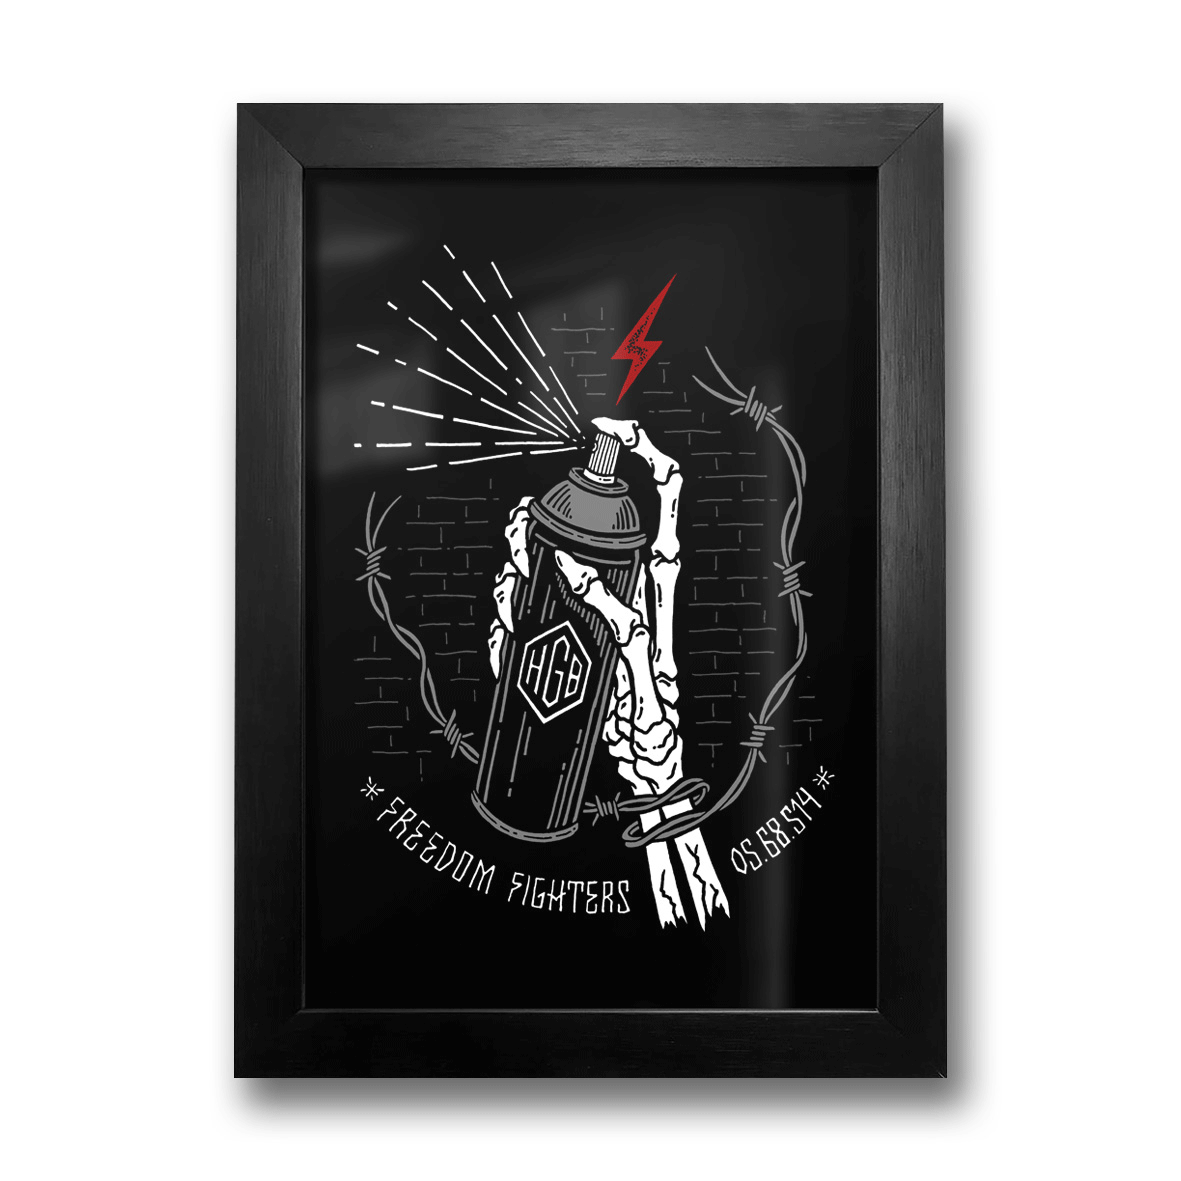 Quadro A4 - Freedom Fighters